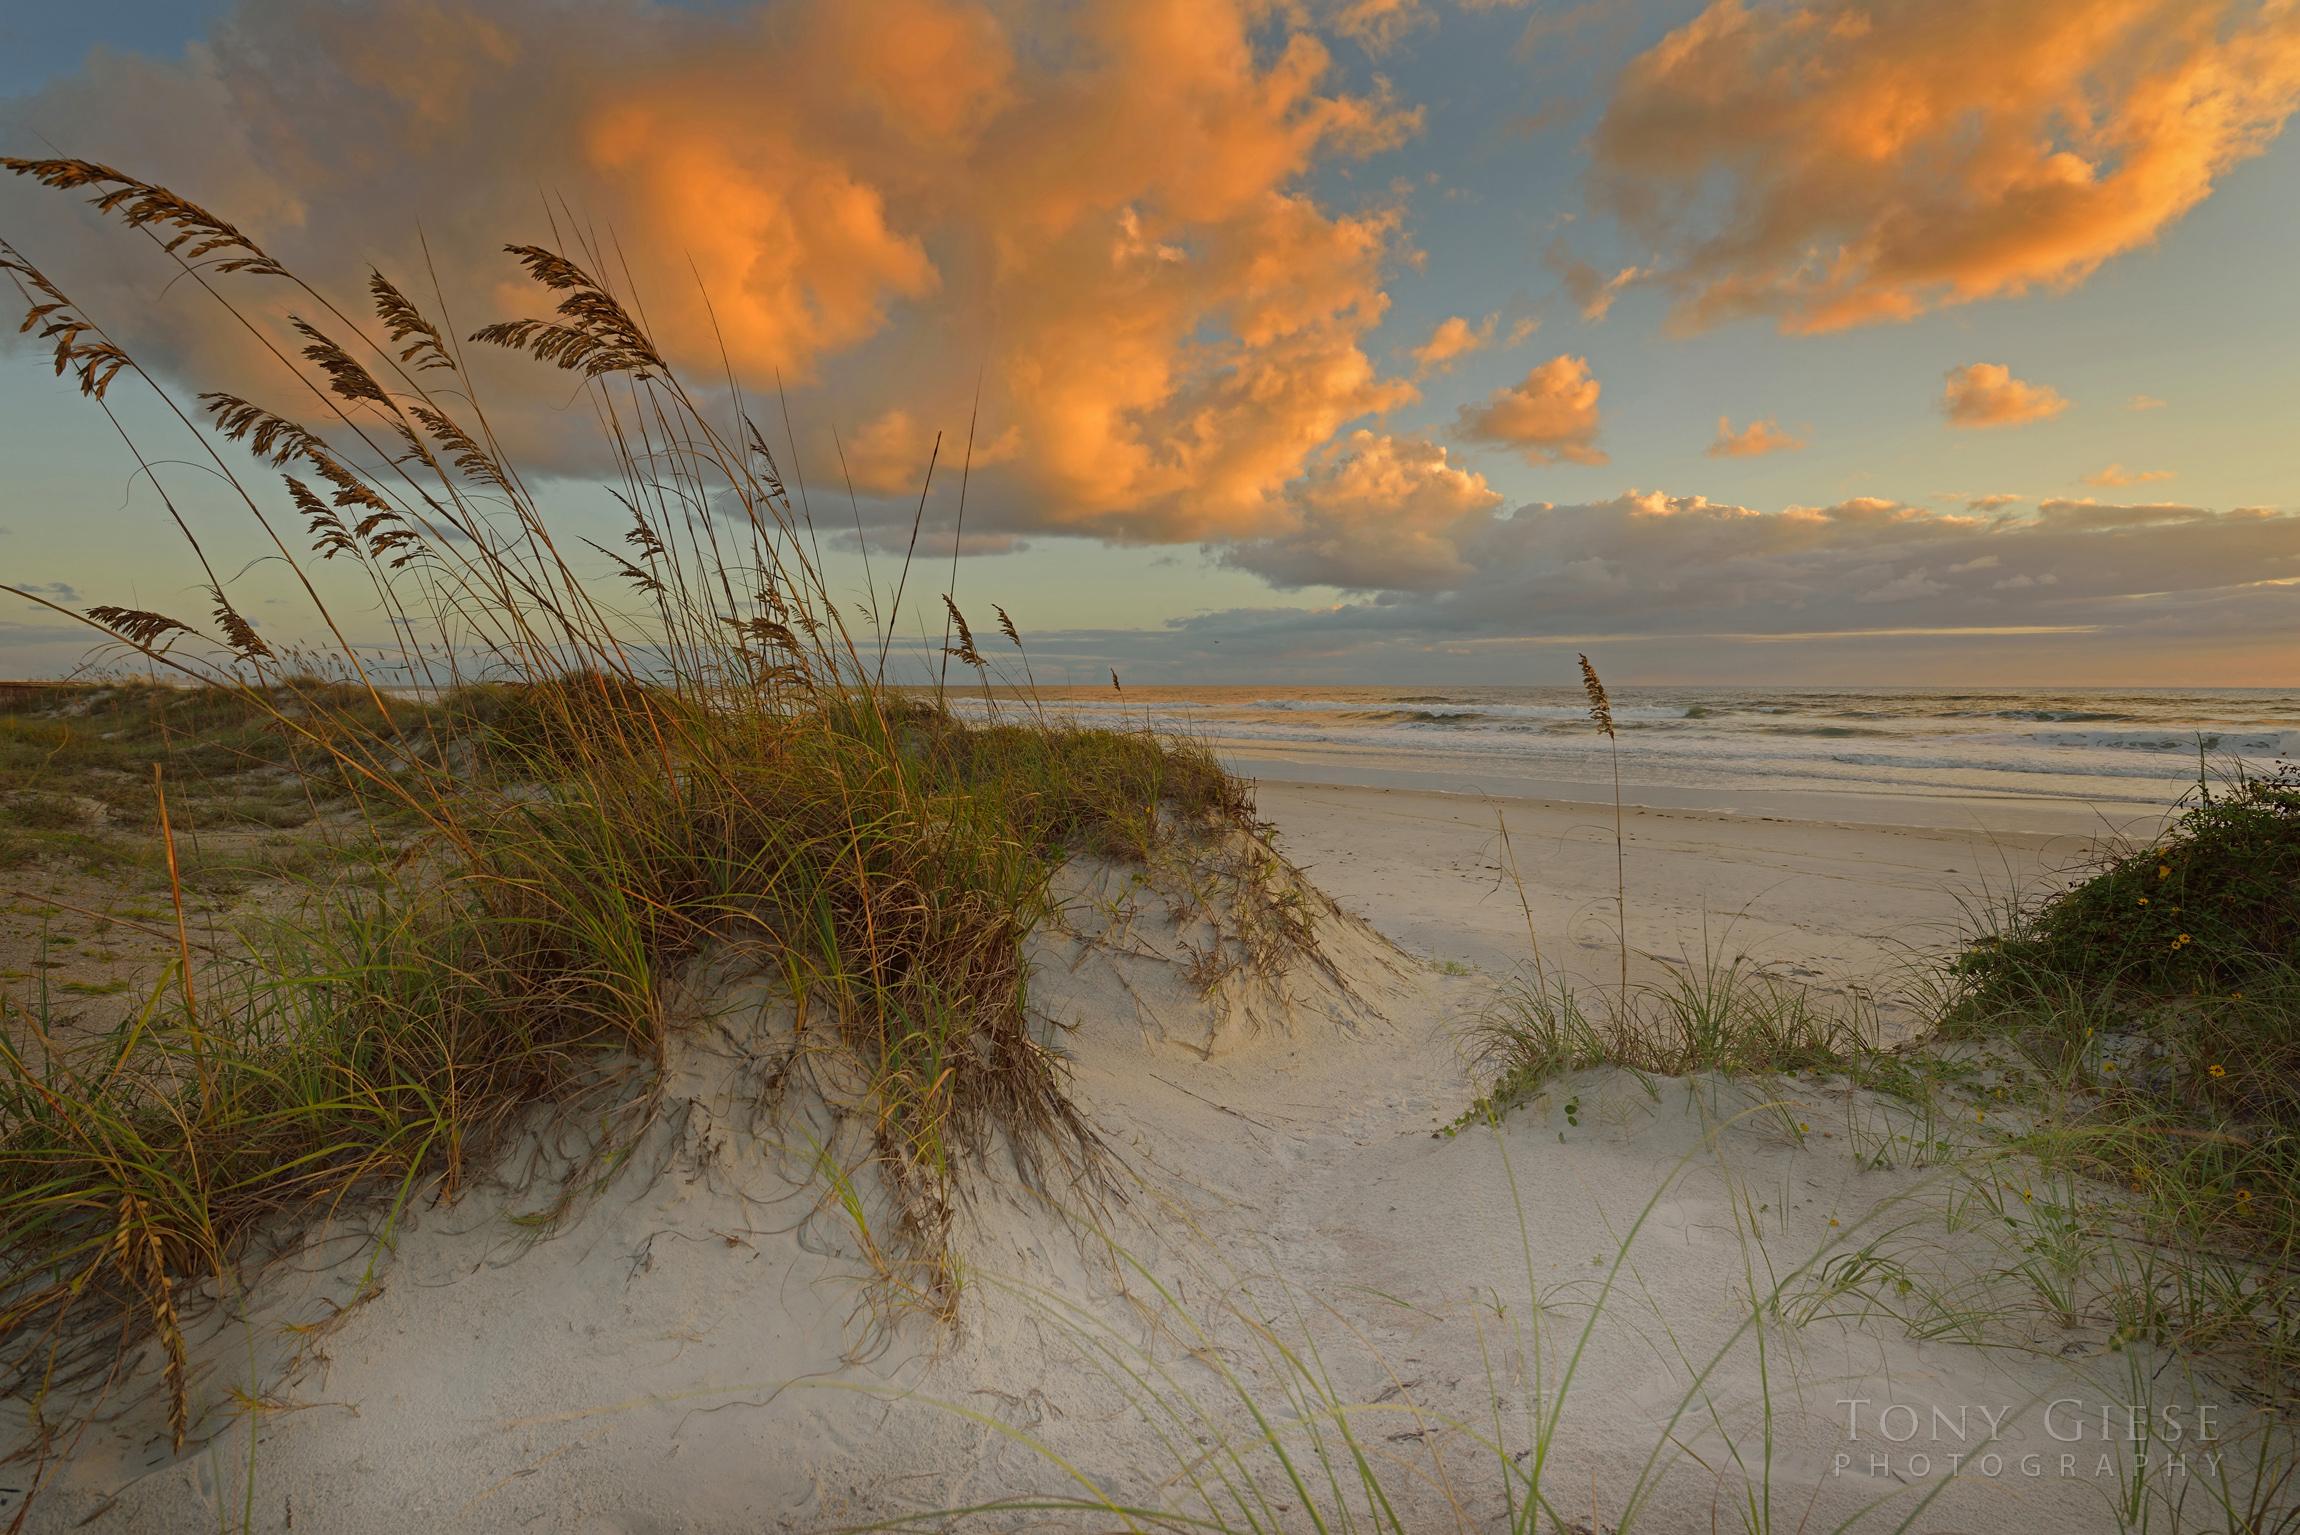 Golden clouds near sunrise, Ponce Inlet, Florida. Lighthouse point park photo by Tony Giese Photography.